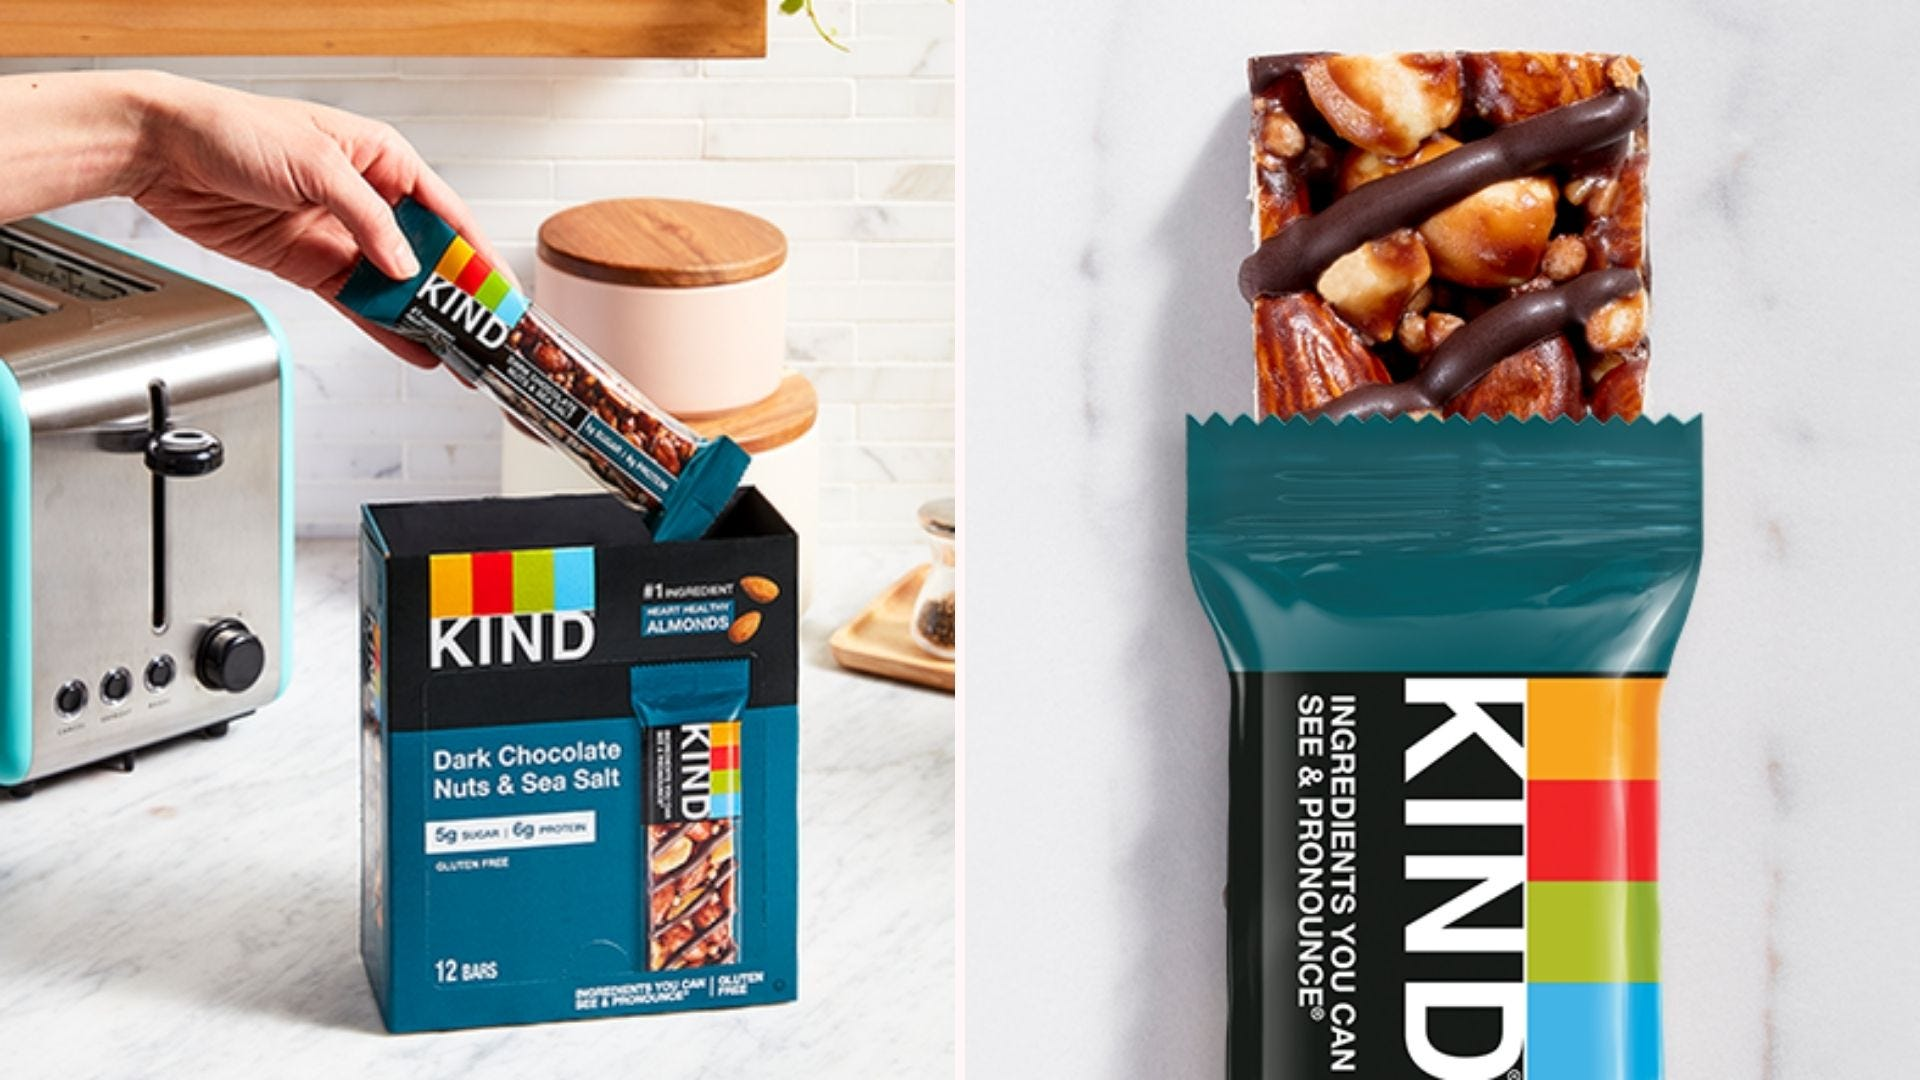 A hand reaching in to grab a Kind Bar from the box.